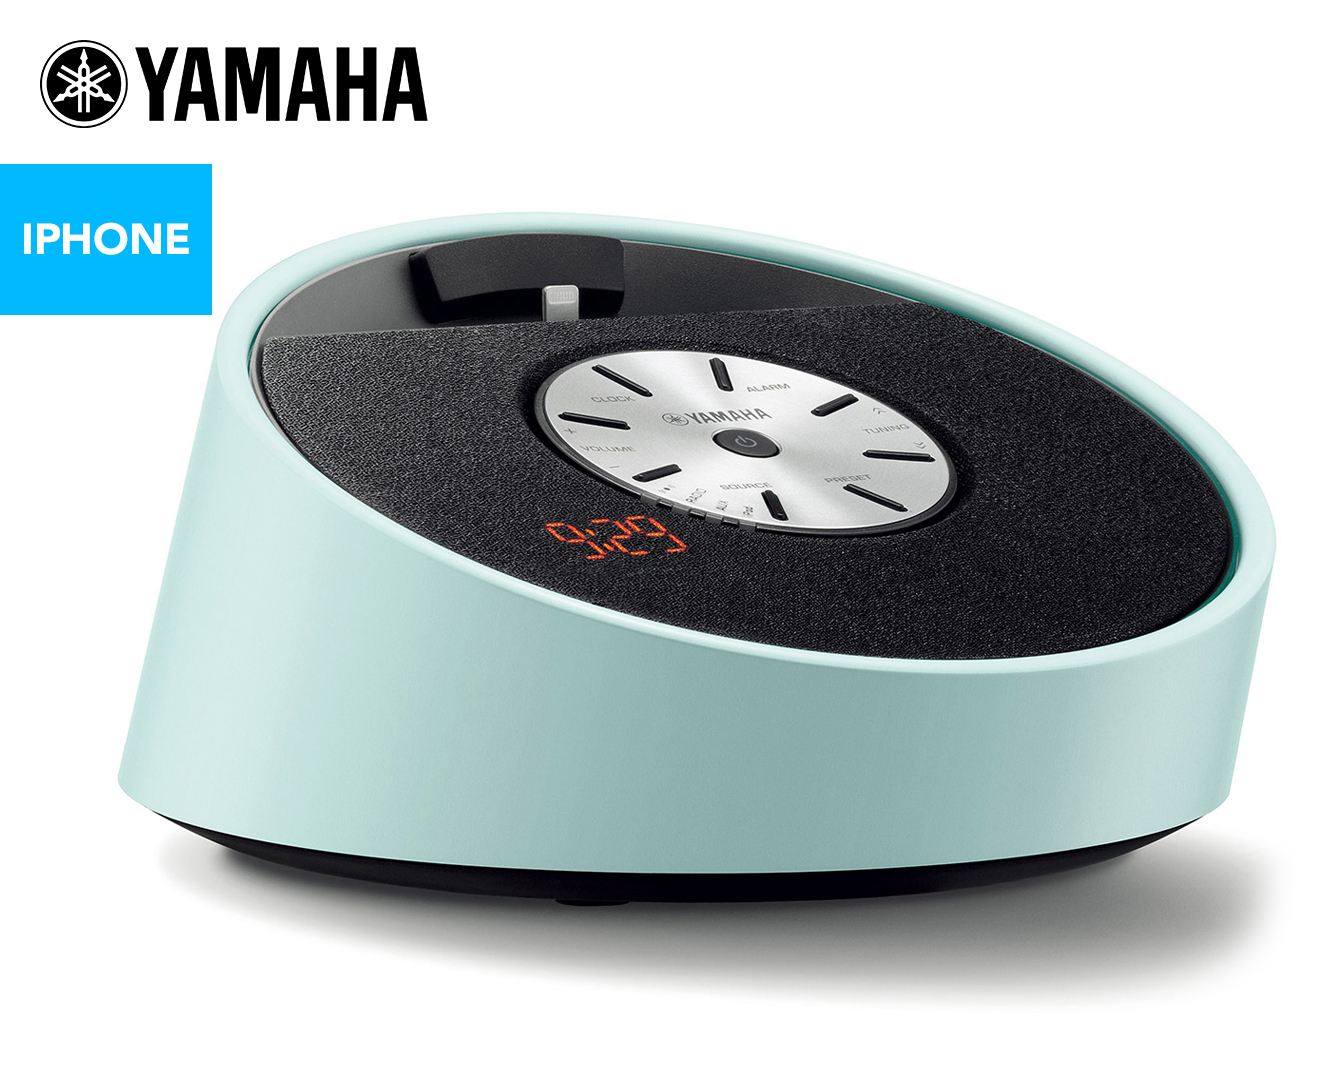 yamaha tsx 14 lightning dock alarm clock blue ebay. Black Bedroom Furniture Sets. Home Design Ideas